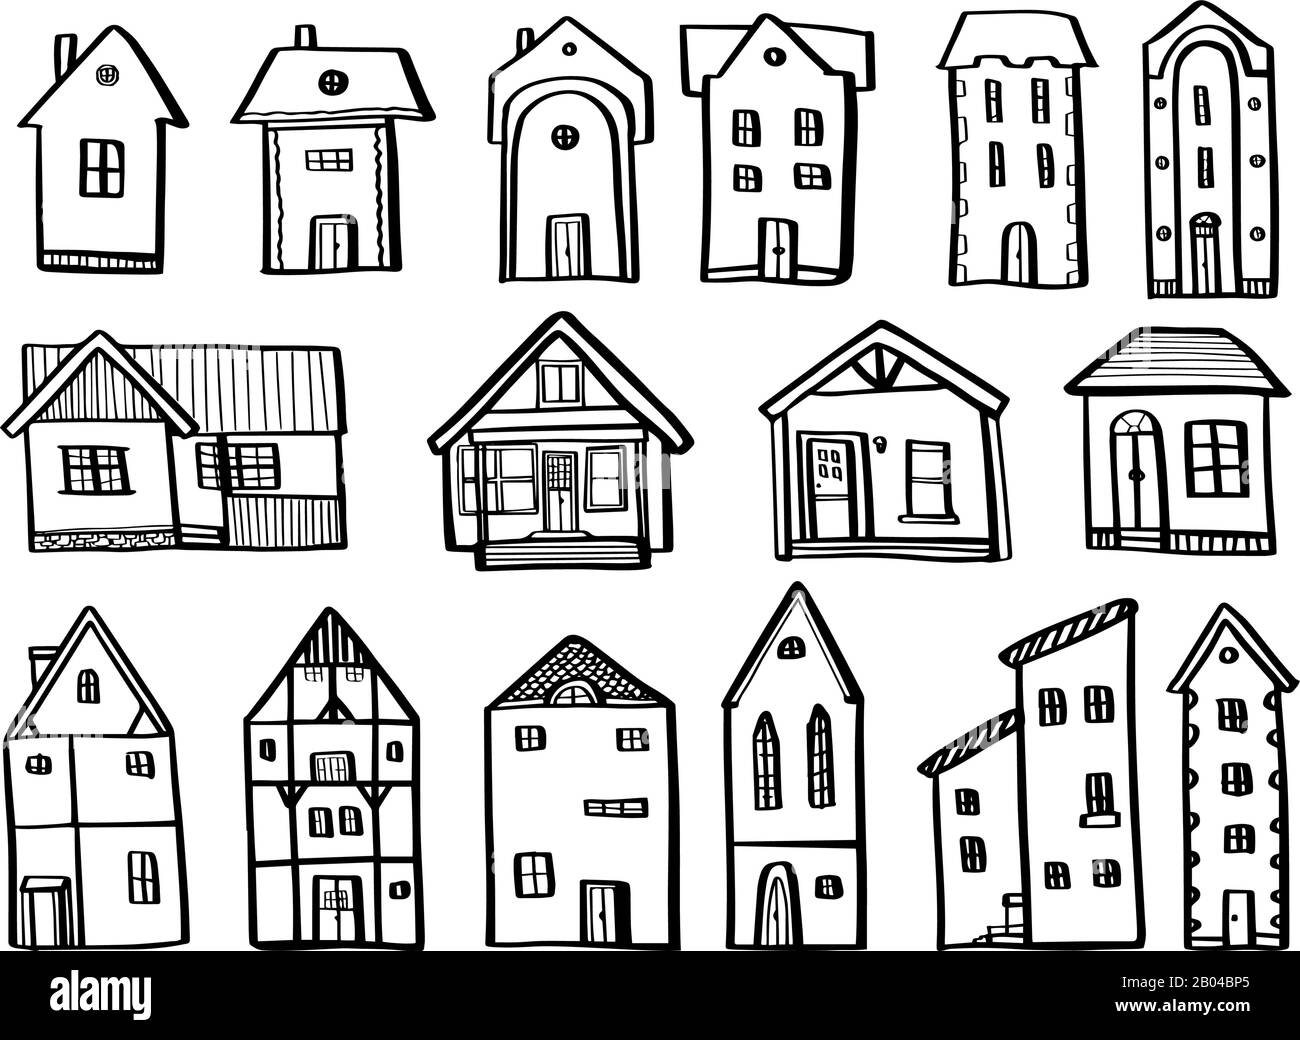 Set Houses In Hand Drawn Doodle Style Isolated On White Background